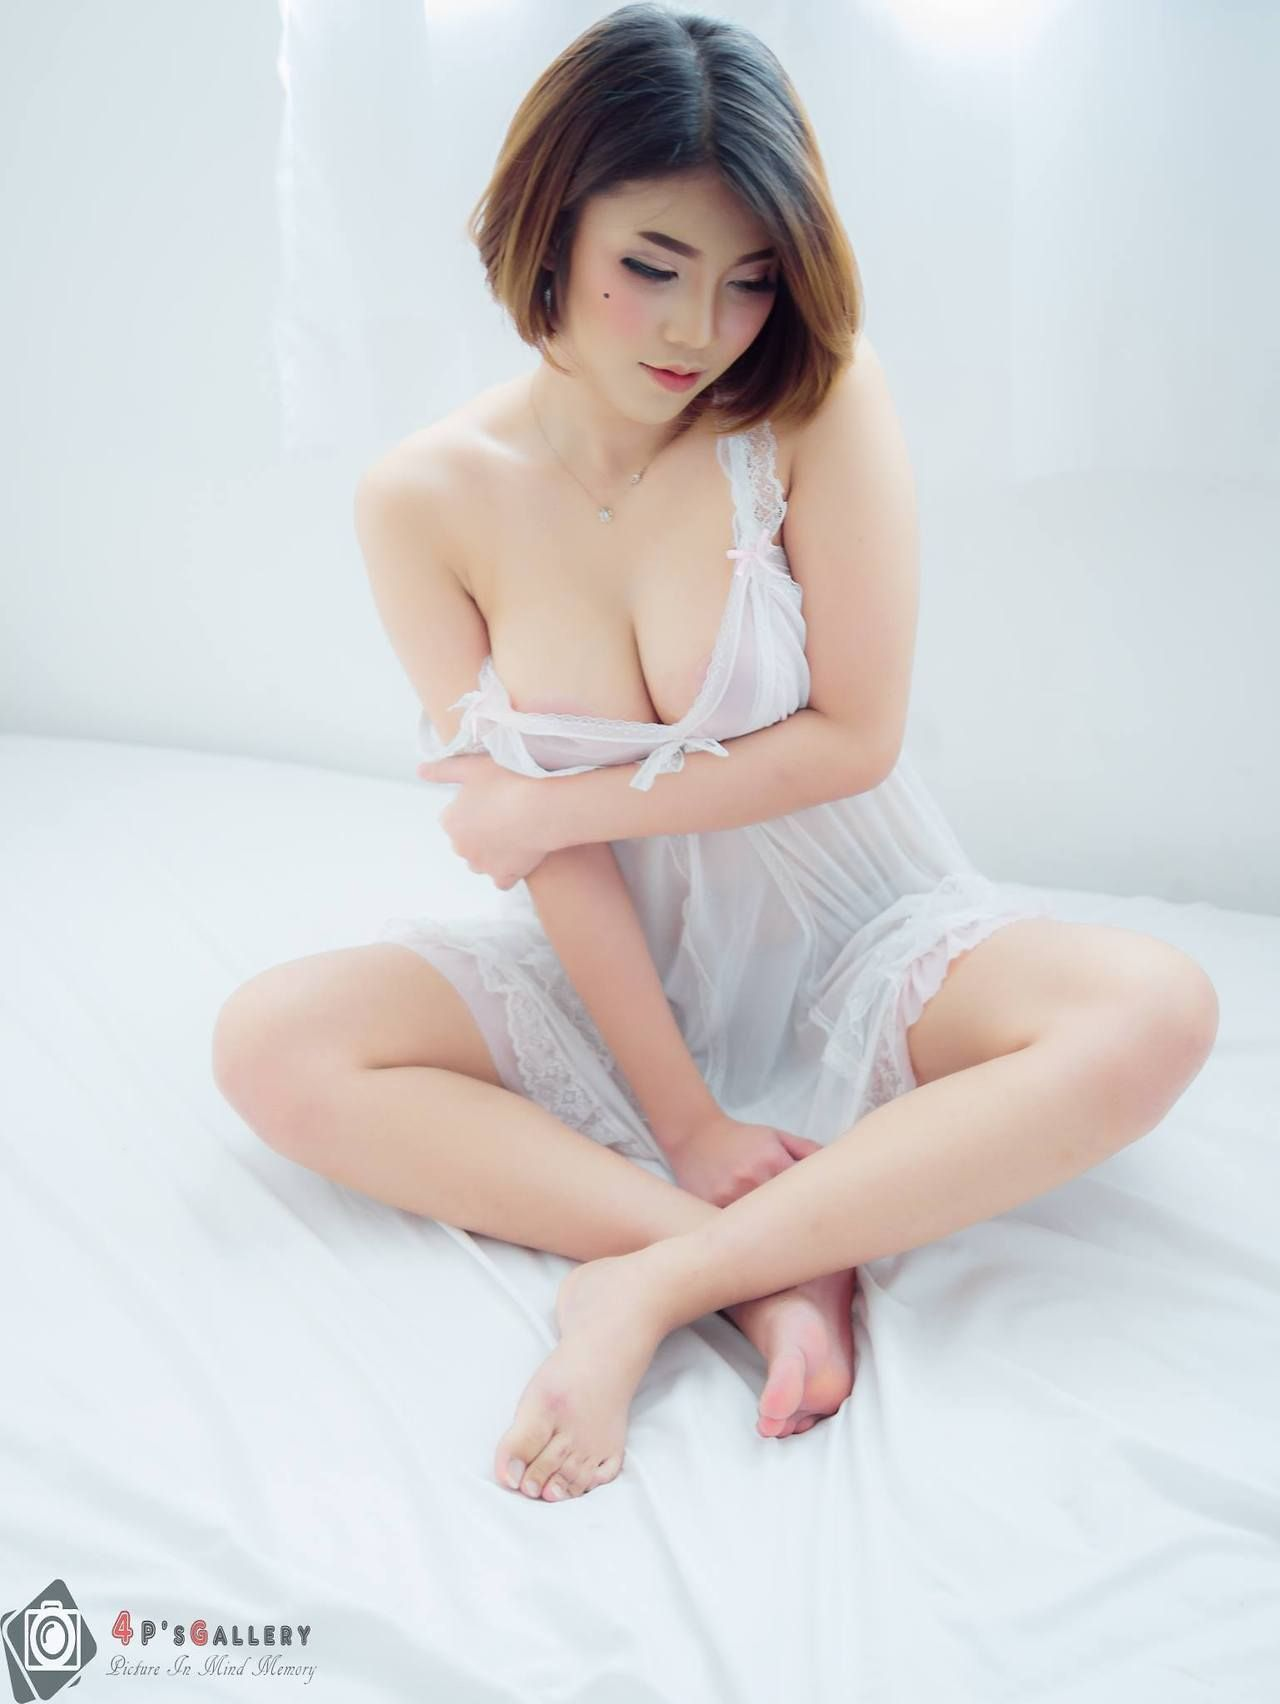 Shorts curvy lingerie asian